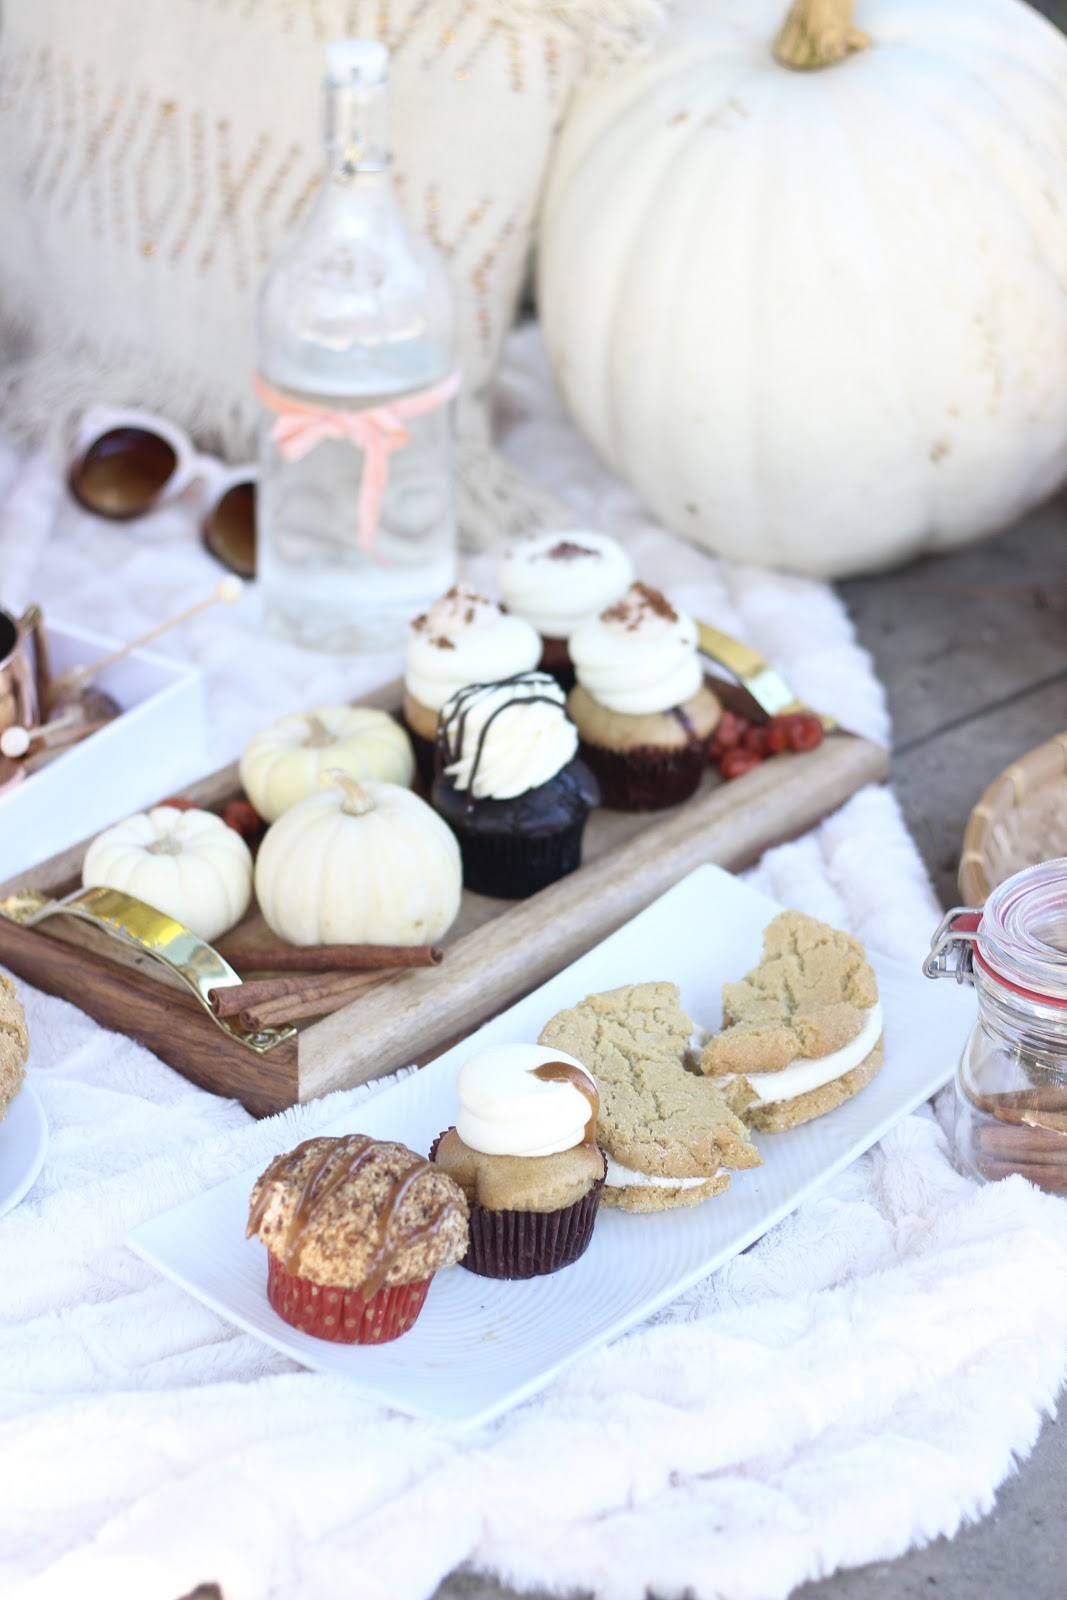 Kelly's Bake Shoppe- Ontario gluten free vegan bakery, Thanksgiving Picnic for two, picnic essentials